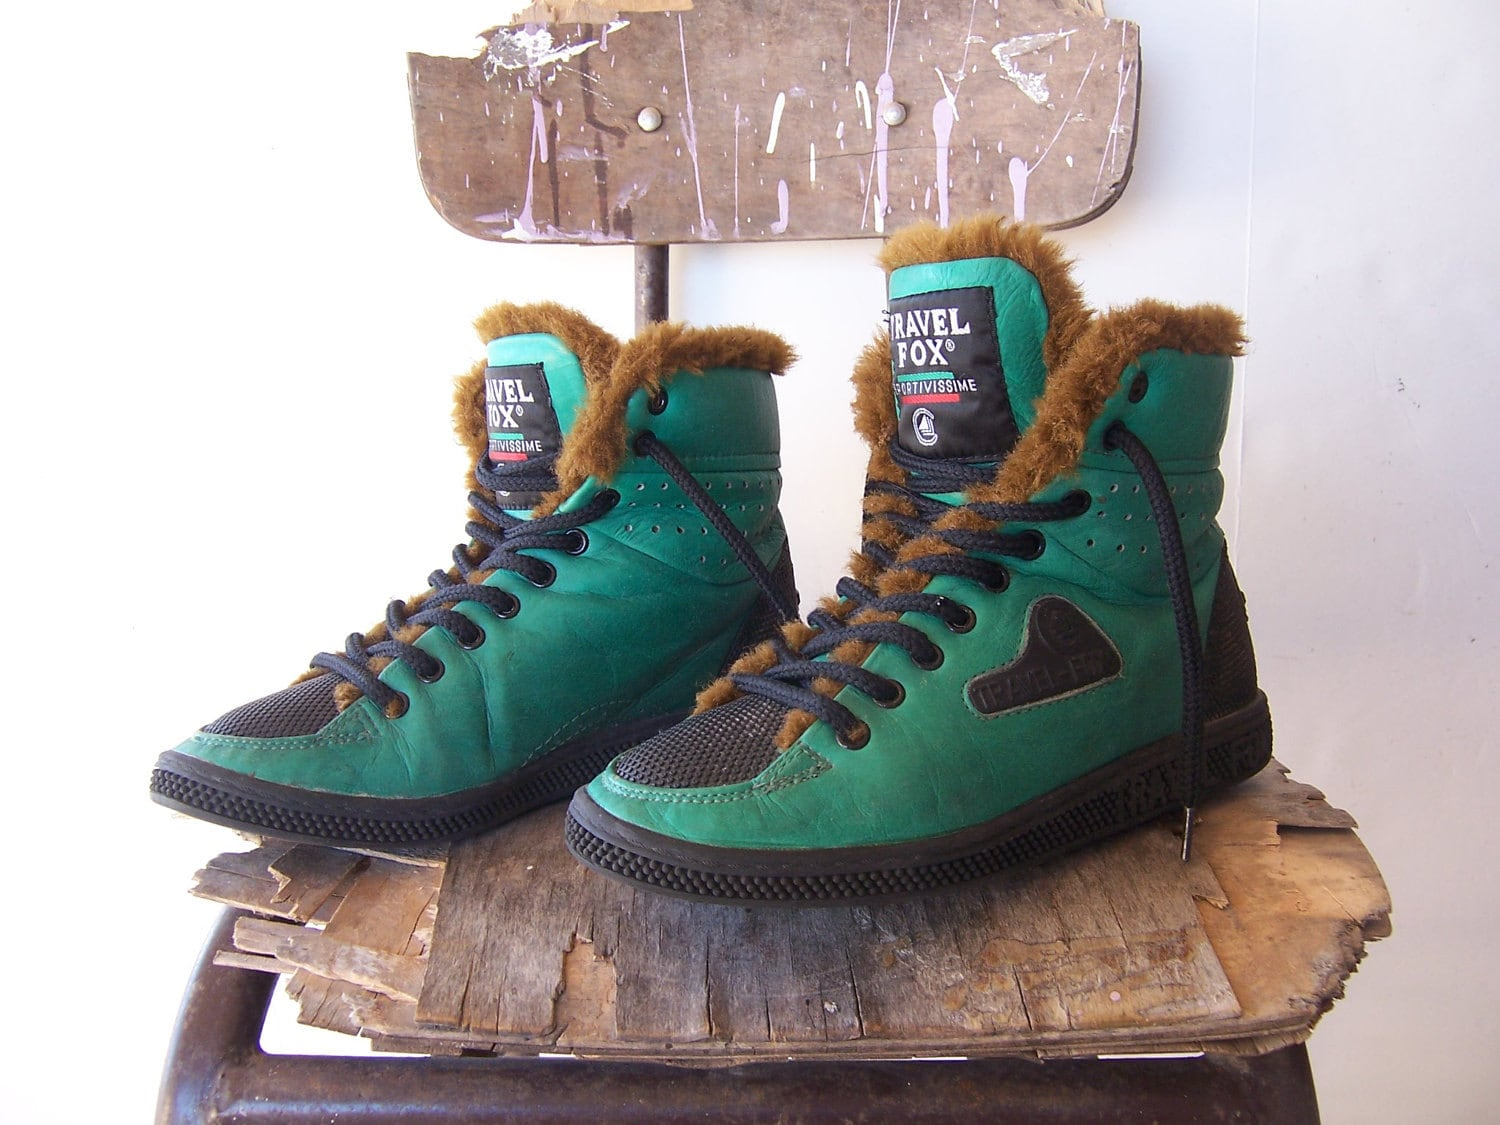 Vintage 80s Travel Fox Ankle Lace Up Boots Sneakers Rare